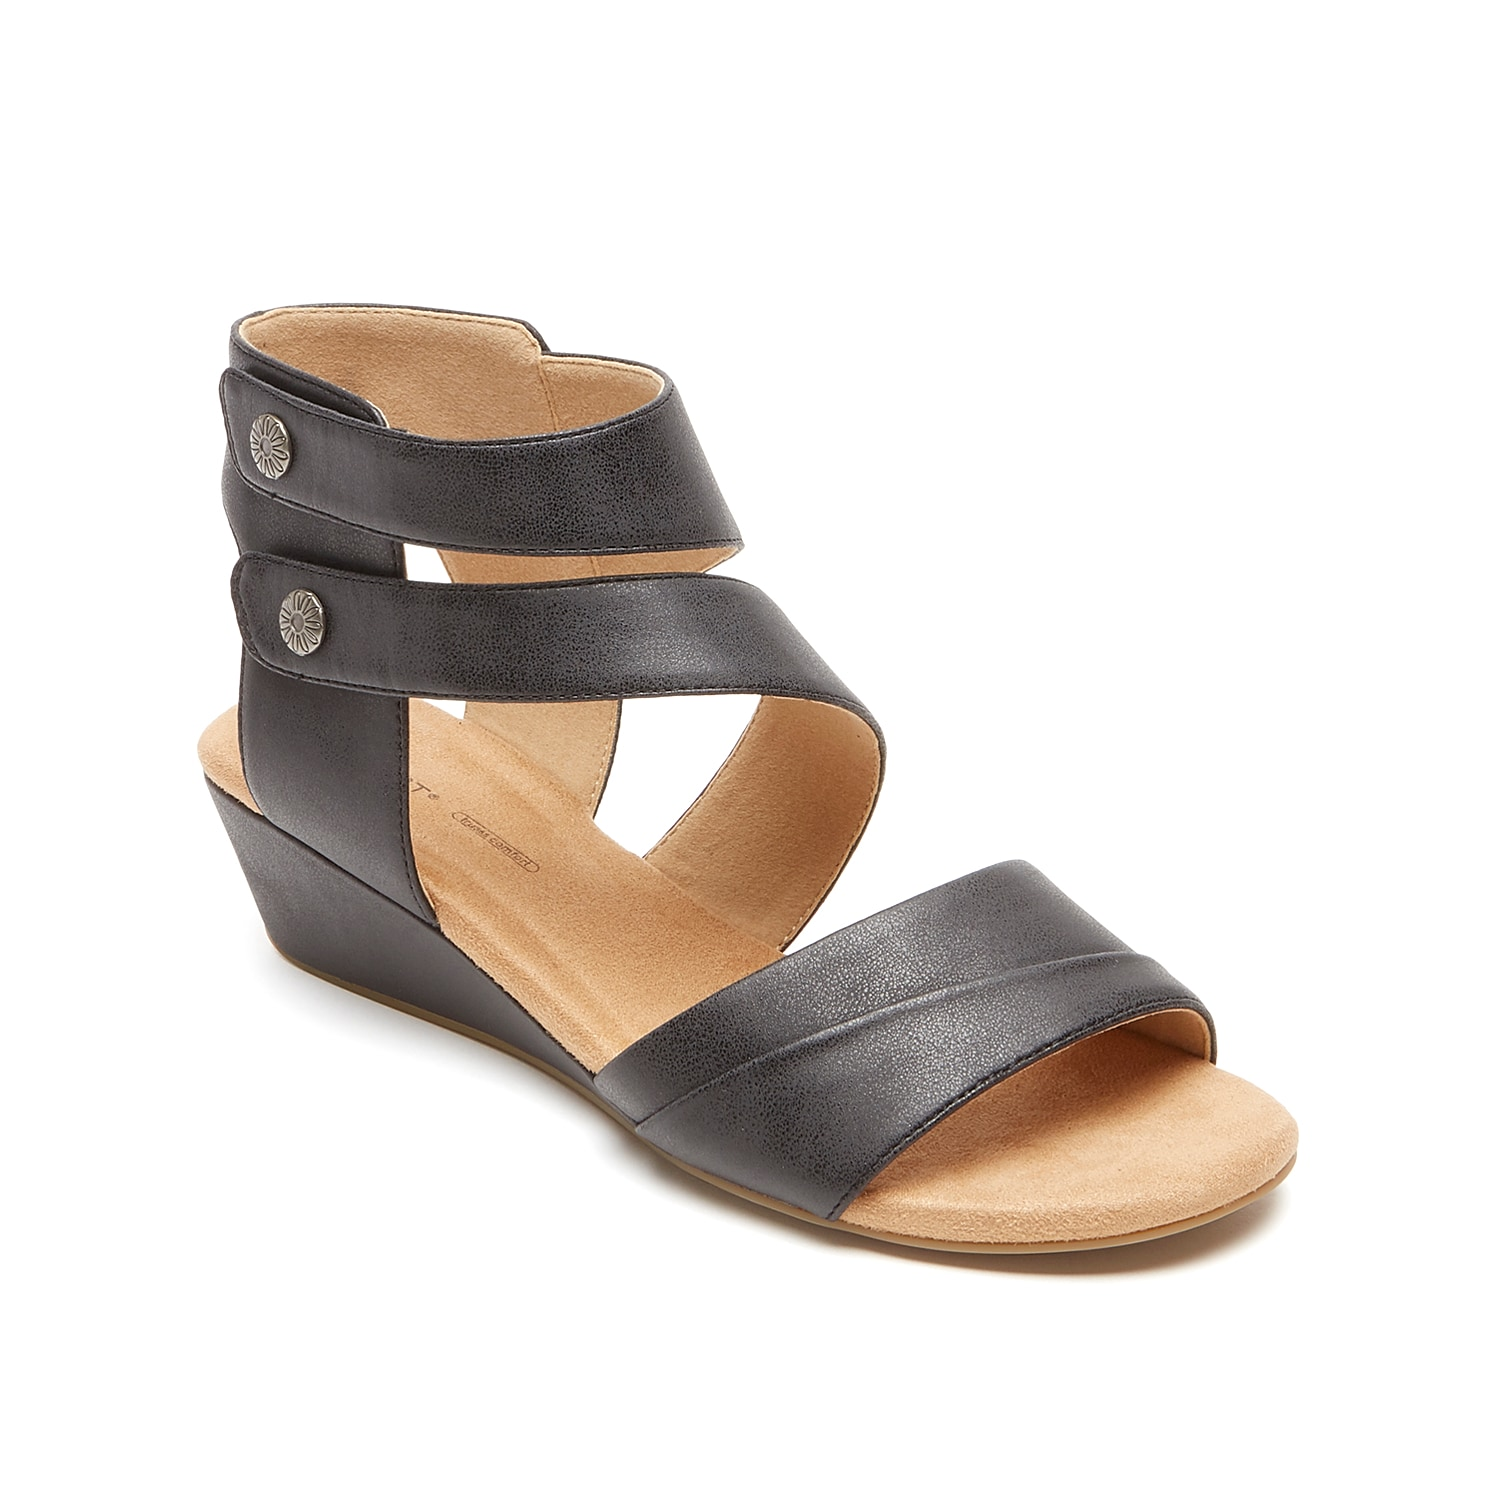 Versatile enough to pair with any outfit, the Calia wedge sandal from Rockport will become a staple in your summer wardrobe. A tru365 comfort footbed will keep you supported while you run weekend errands or walk around the park.